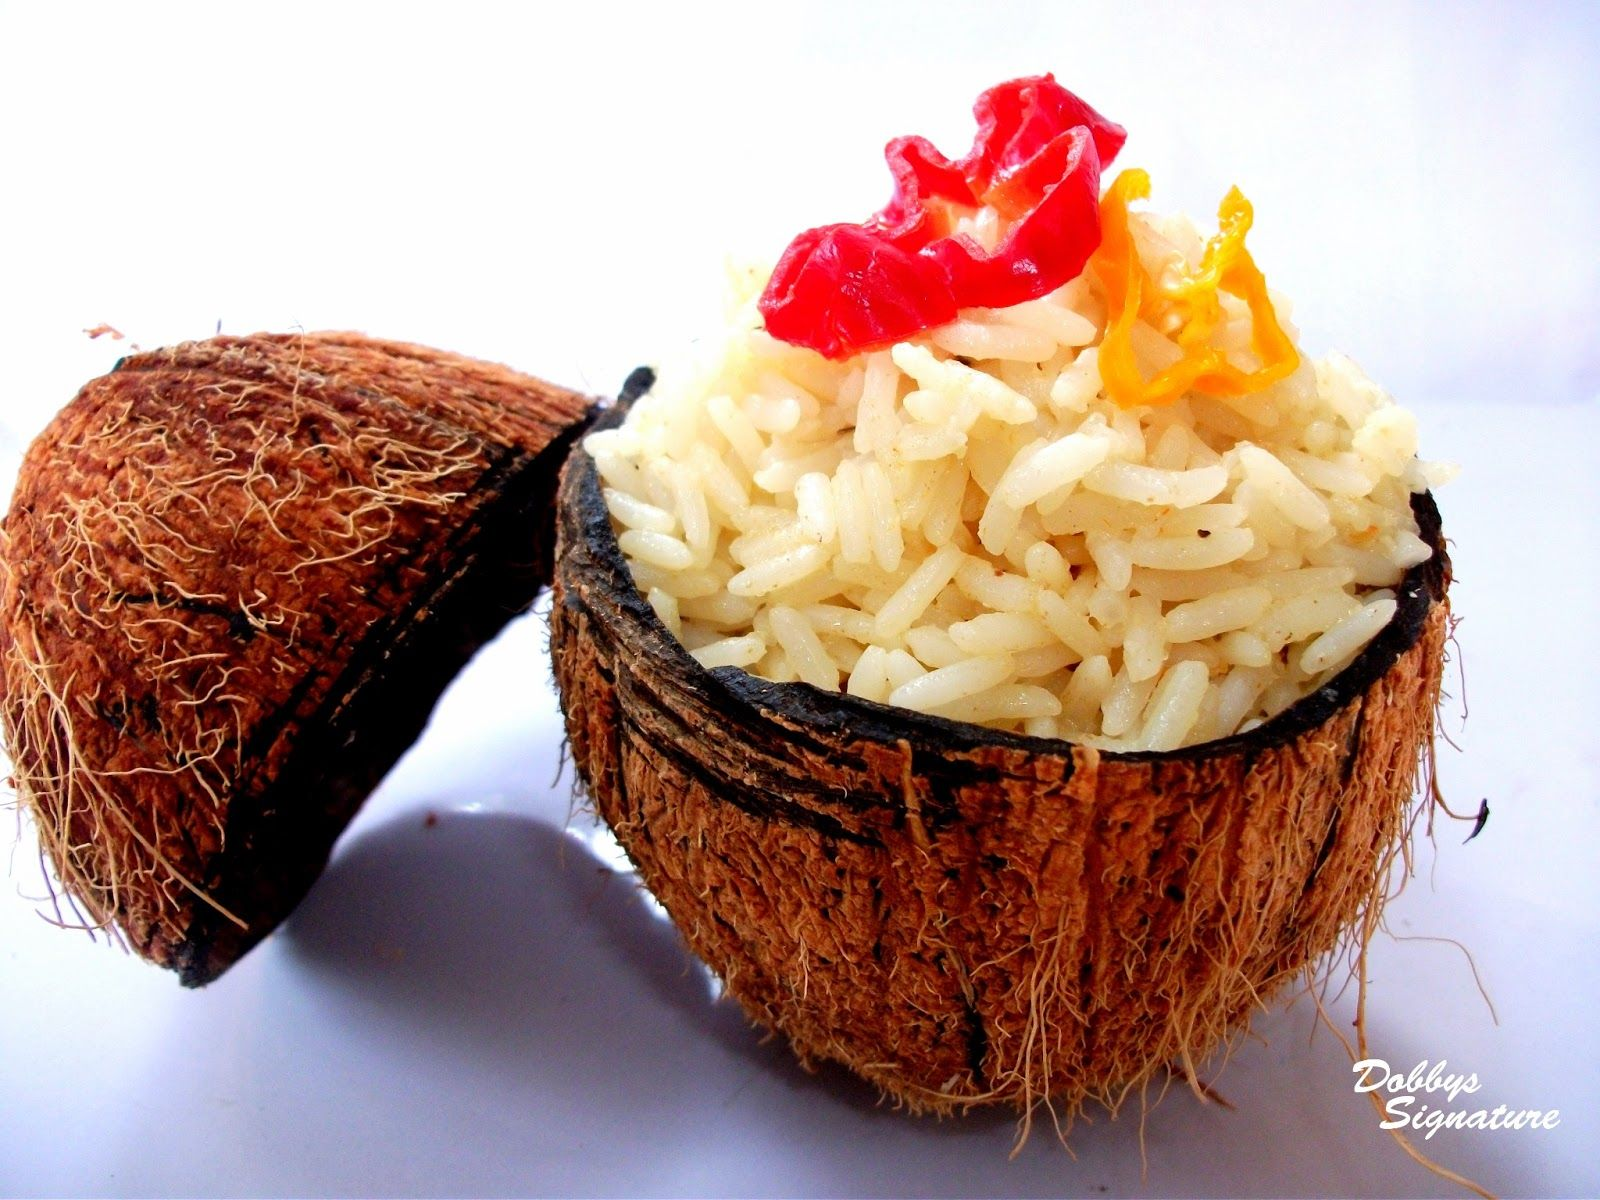 Classic coconut rice nigerian food africans and food for Unique meals